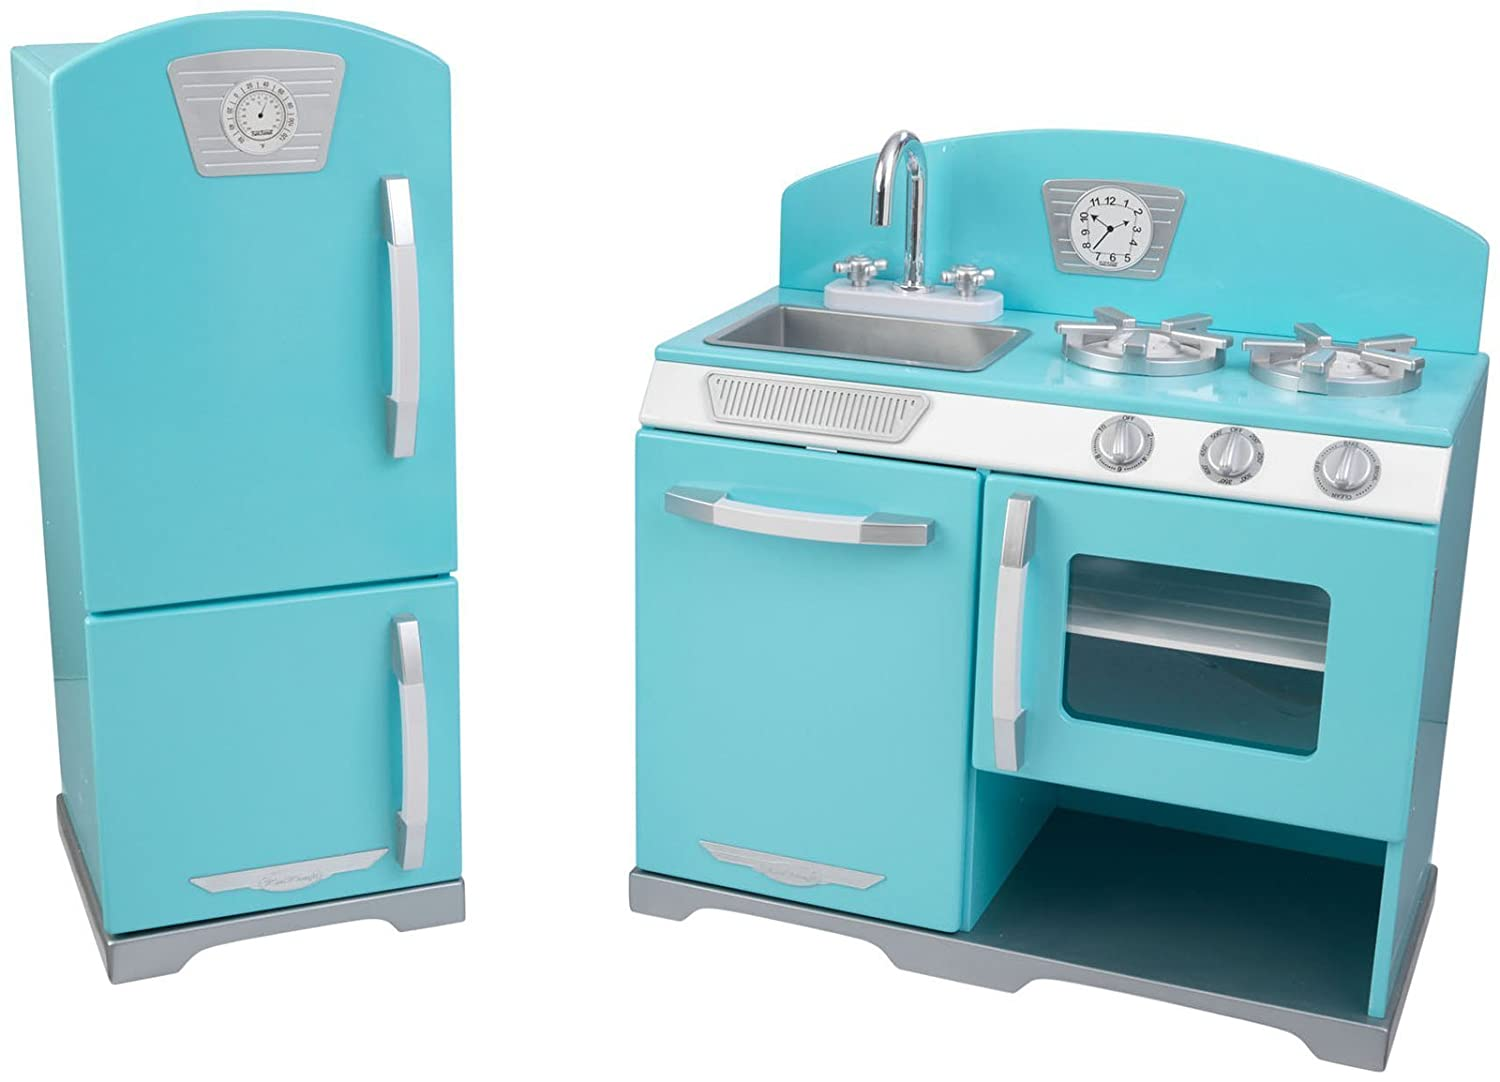 Amazon.com: KidKraft 2-Piece Retro Kitchen, Blue: Toys & Games